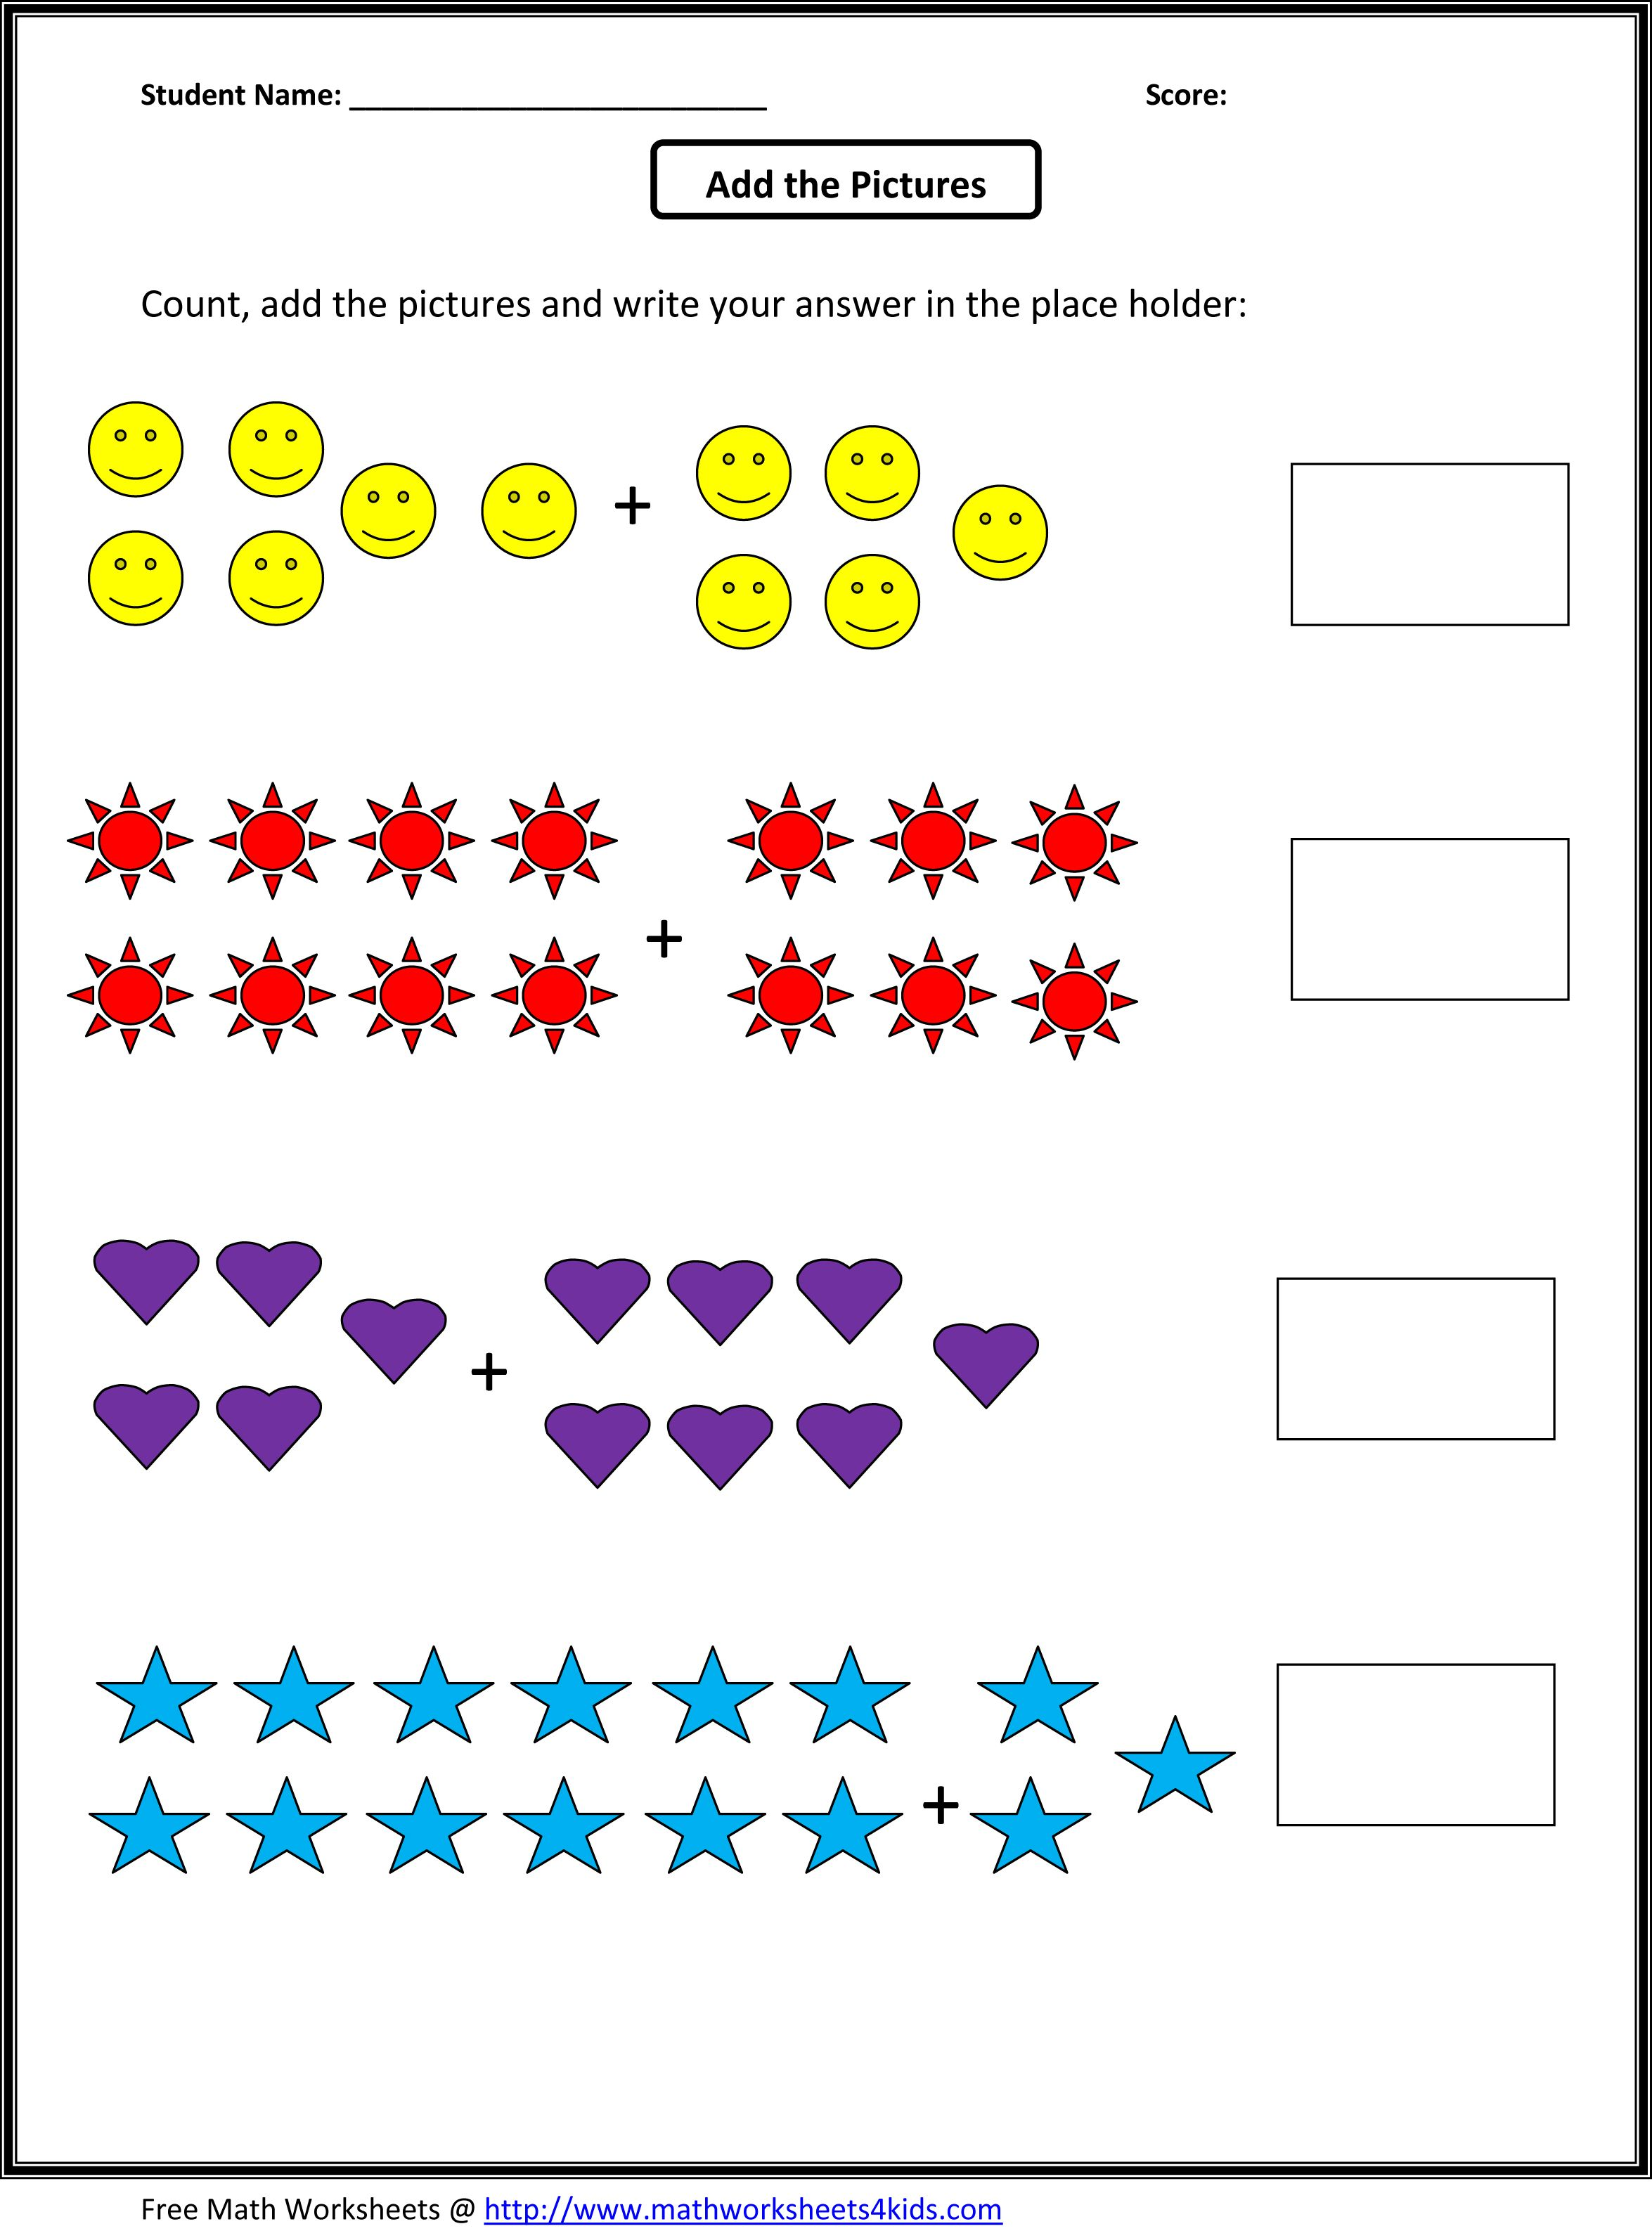 Worksheet Addition Worksheets 1st Grade 1000 images about math on pinterest subtraction strategies facts and worksheets